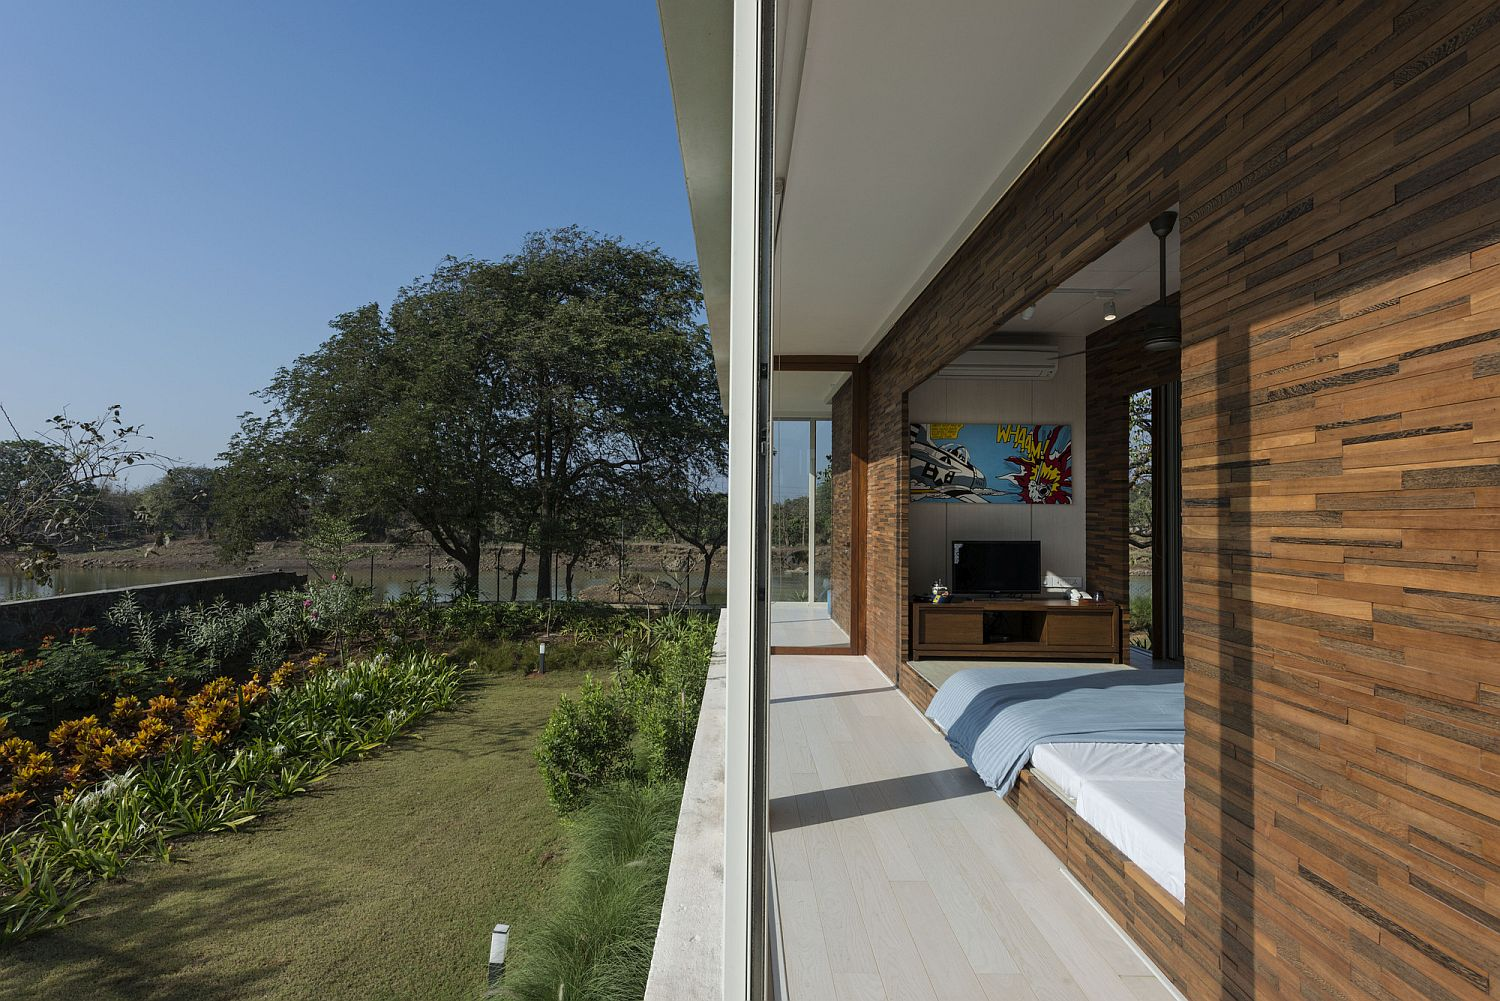 Relaxing bedrooms flow into the landscape outside